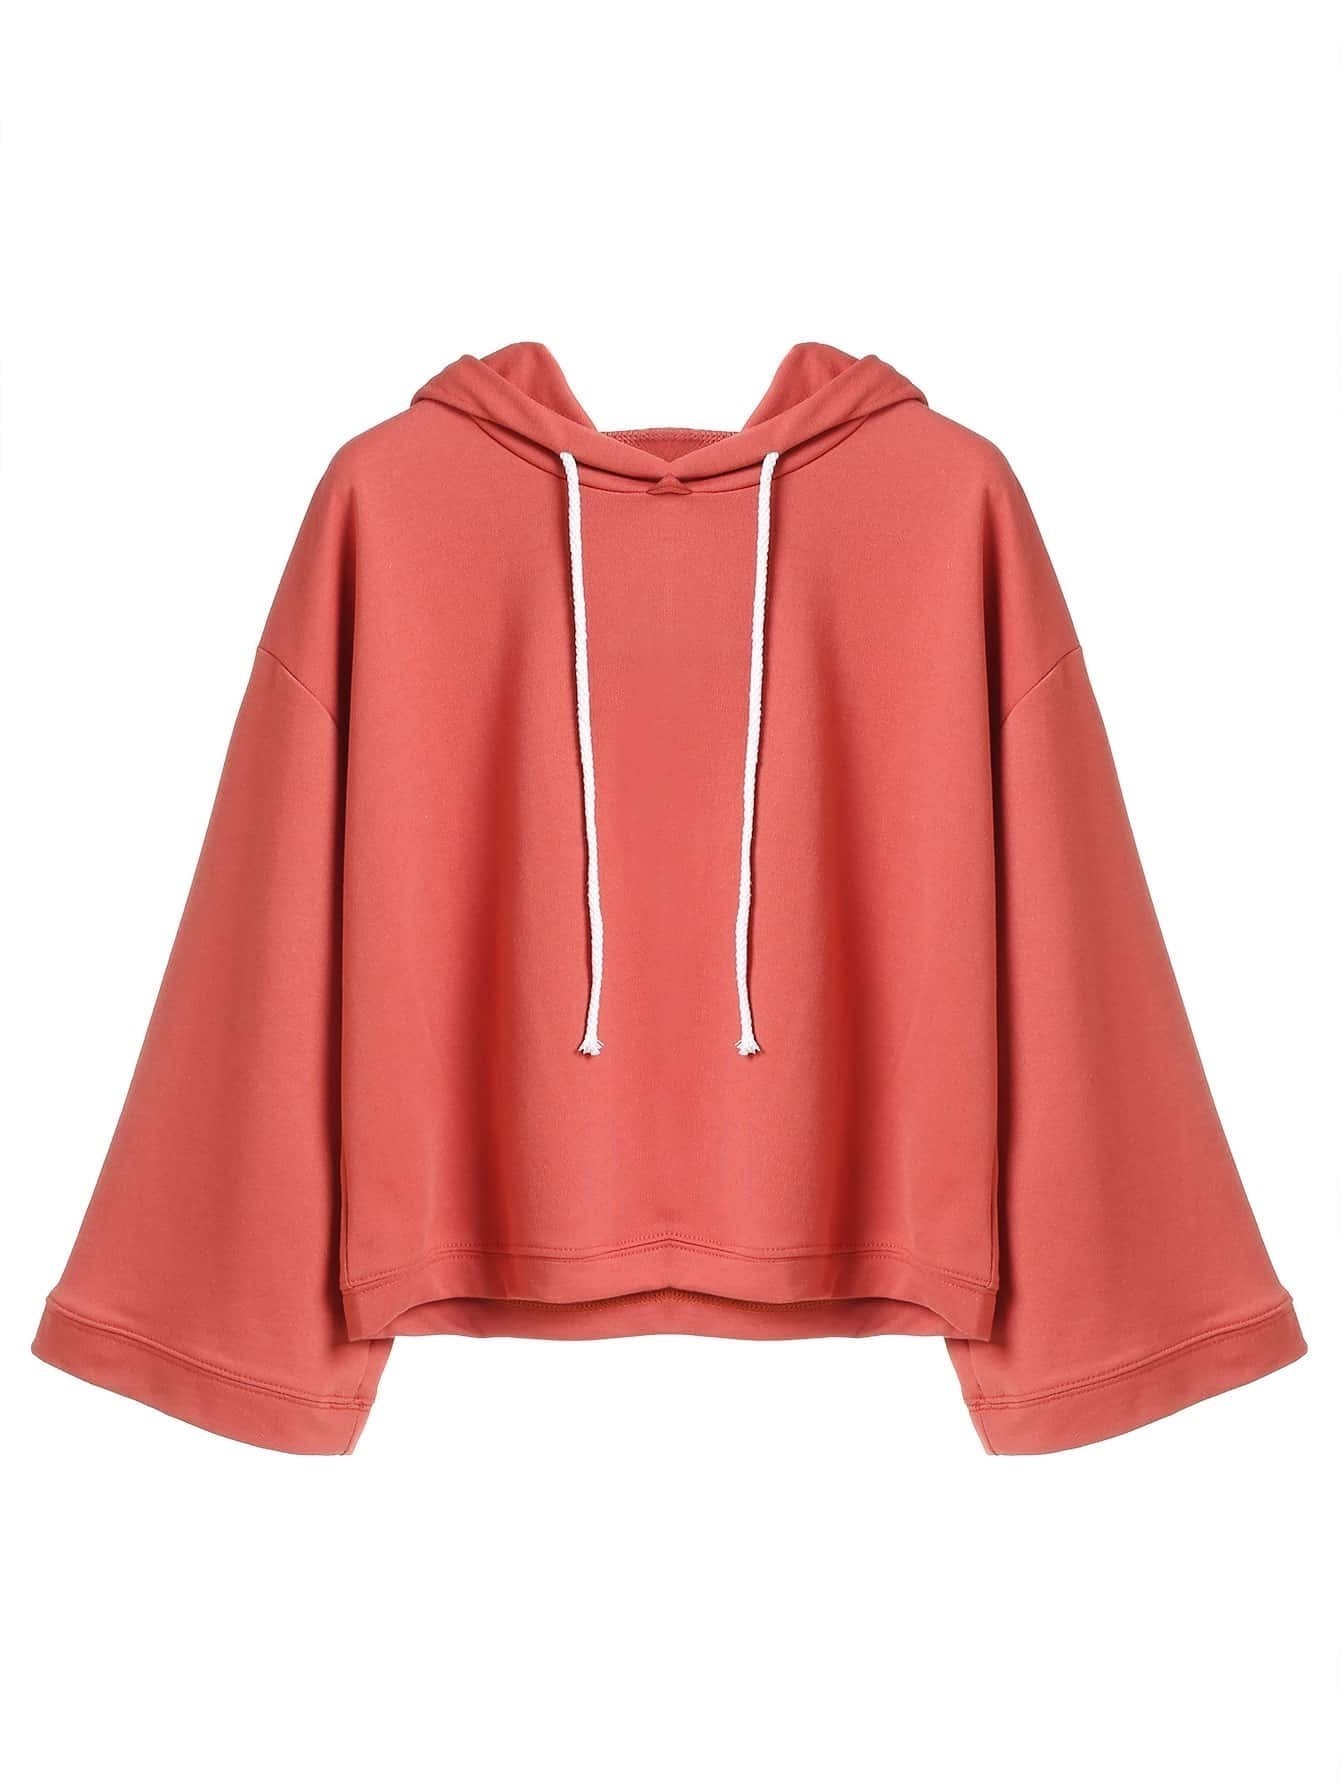 Sweat shirt plain en capuche avec lacet rouge brique for Interieur paupiere inferieure rouge